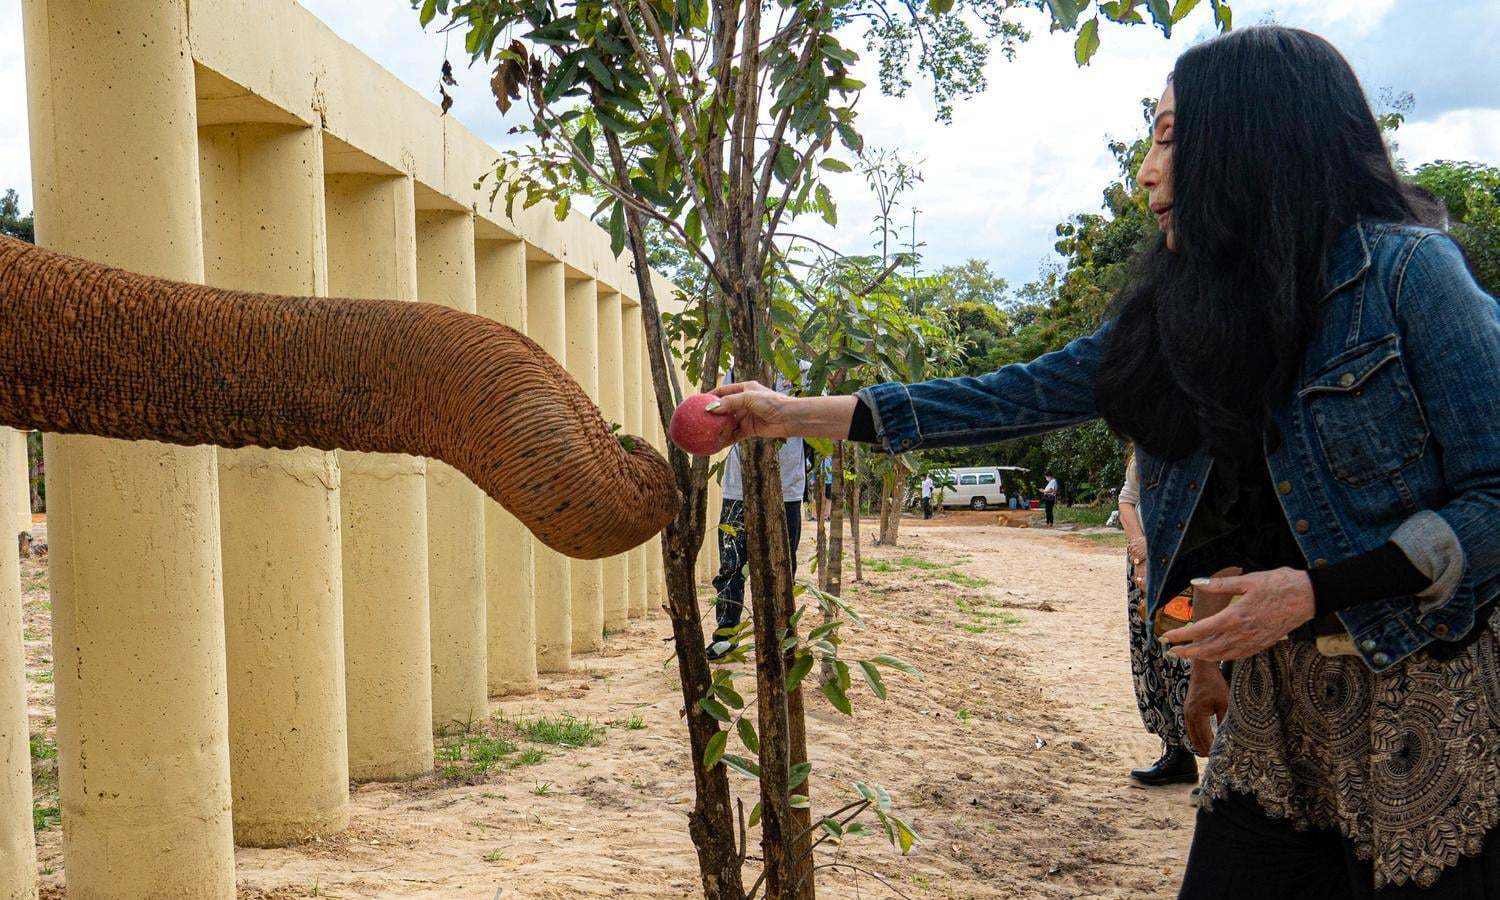 Kaavan will live life as an elephant, not a prisoner, says Cher